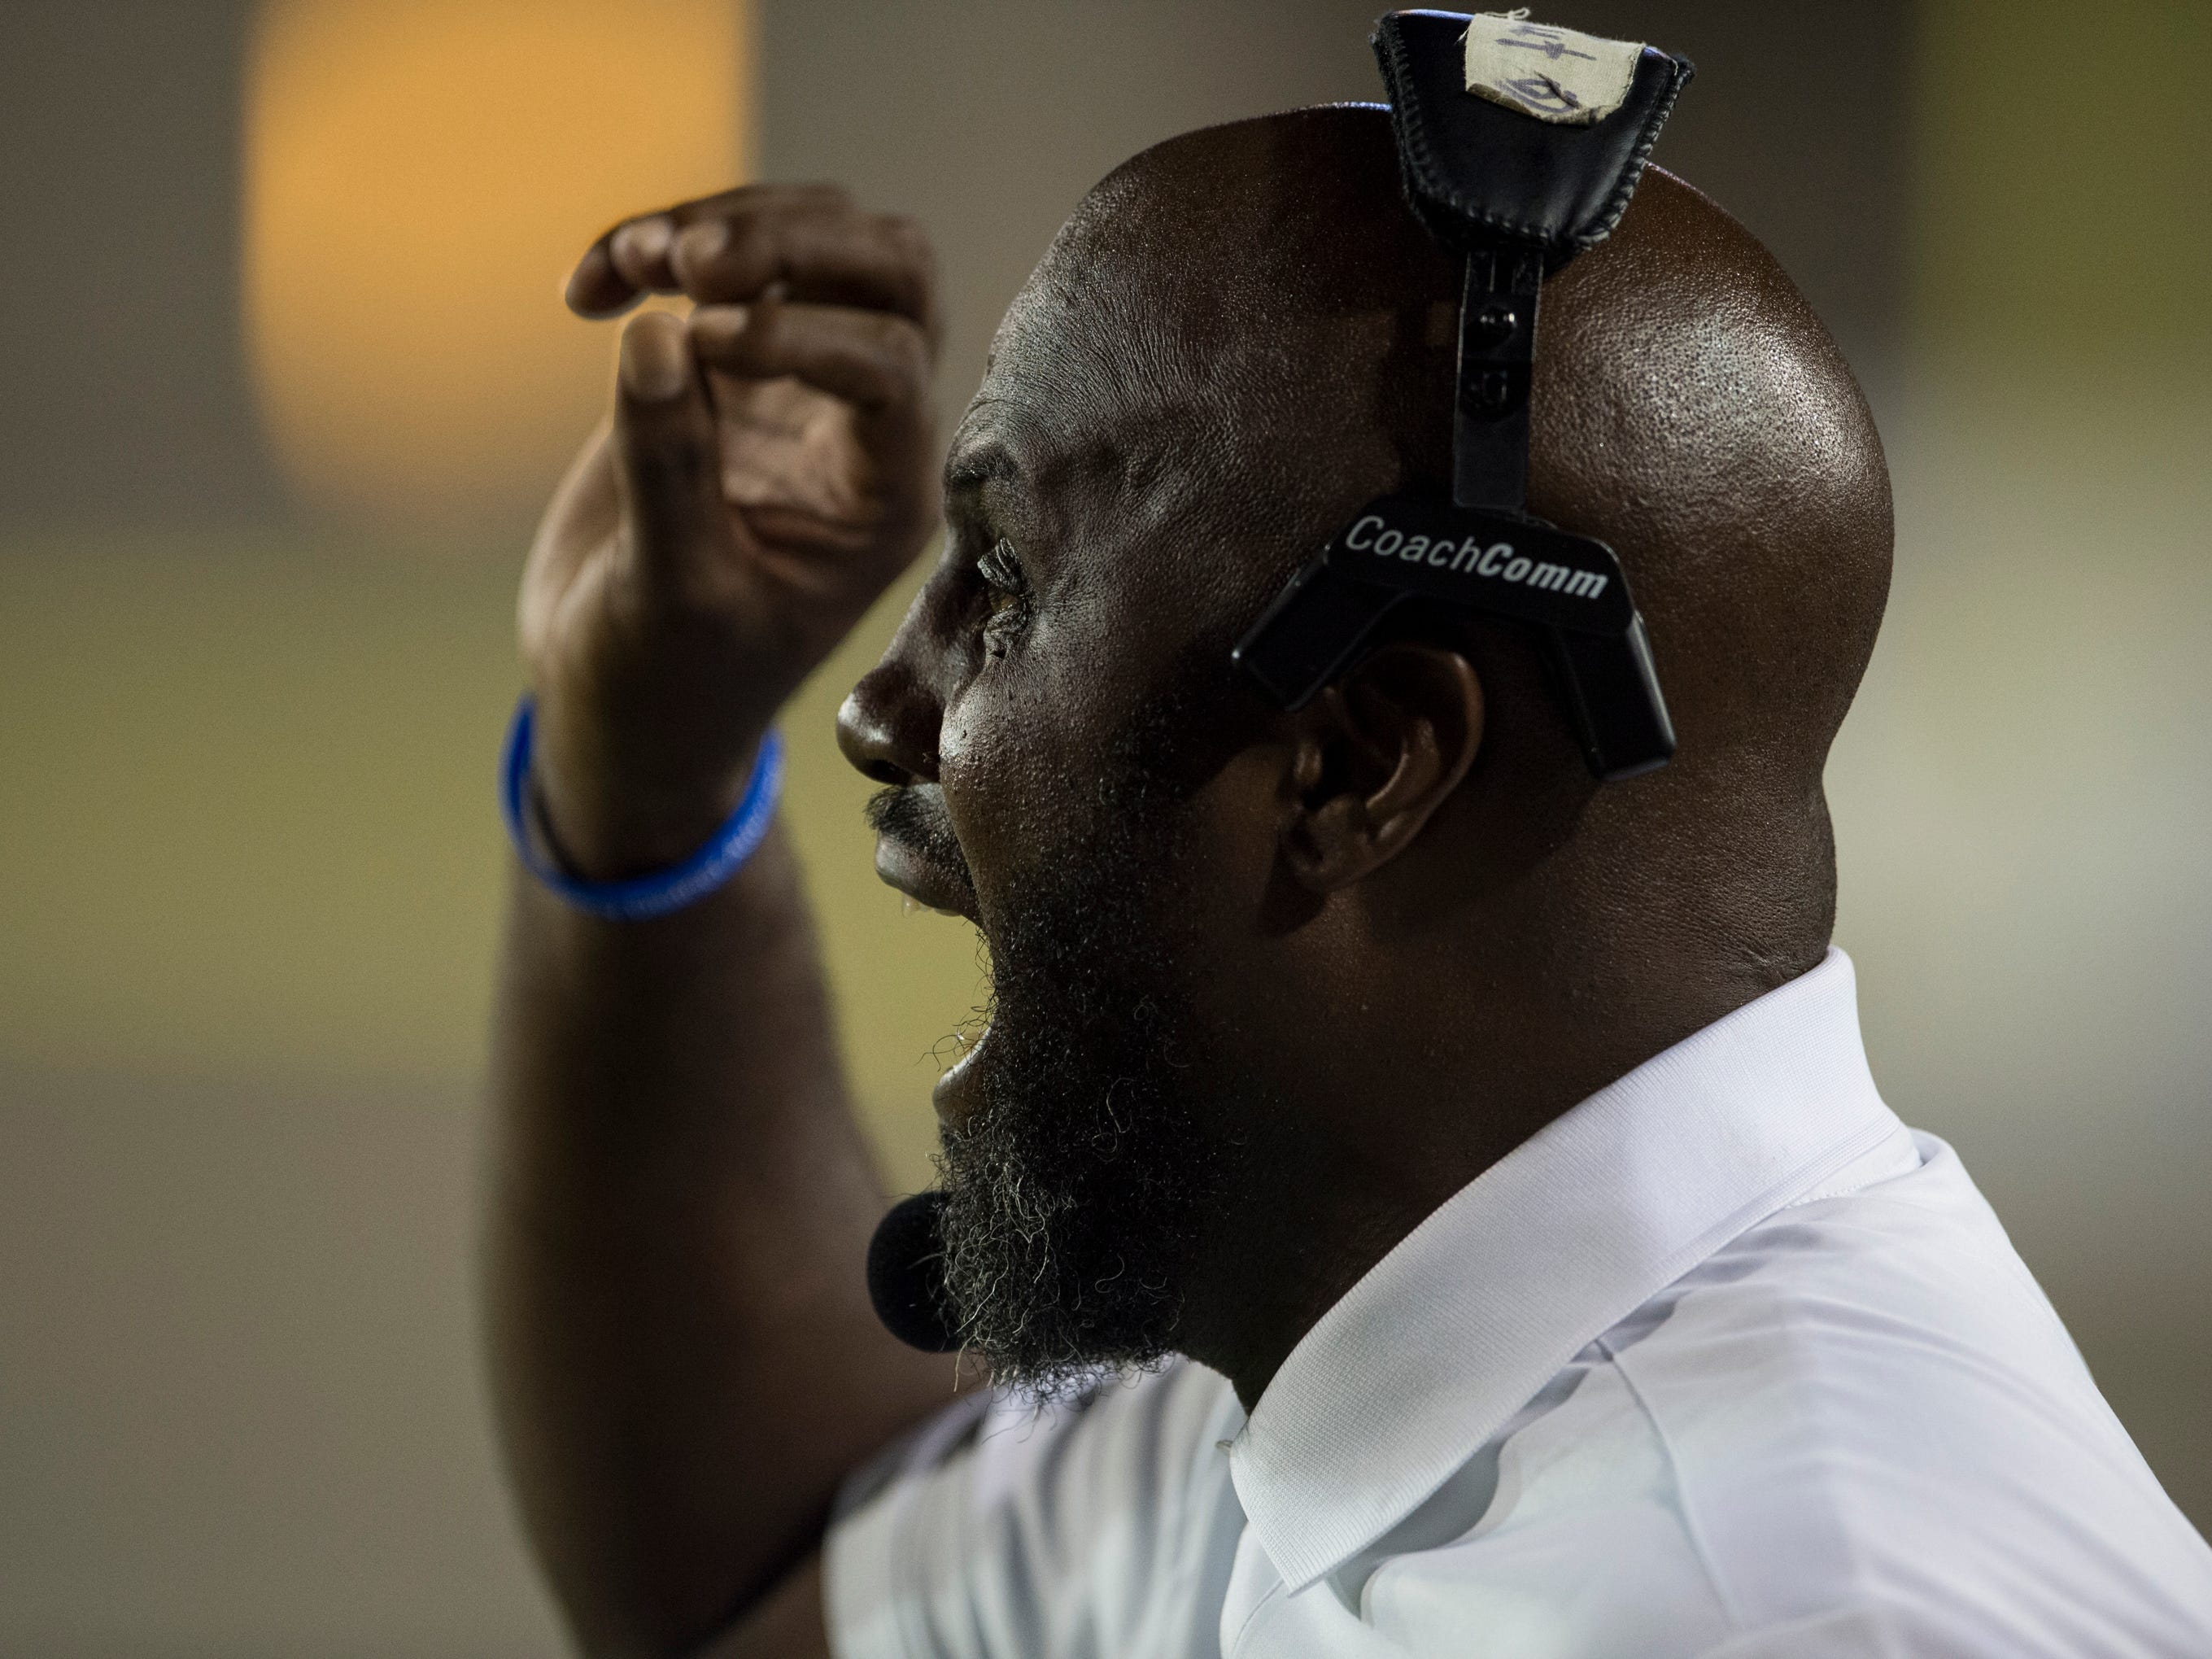 Lanier head coach Marvin Cunningham yells at his team from the sideline at Cramton Bowl in Montgomery, Ala., on Friday, Sept. 21, 2018. Lanier defeated Park Crossing 35-28.